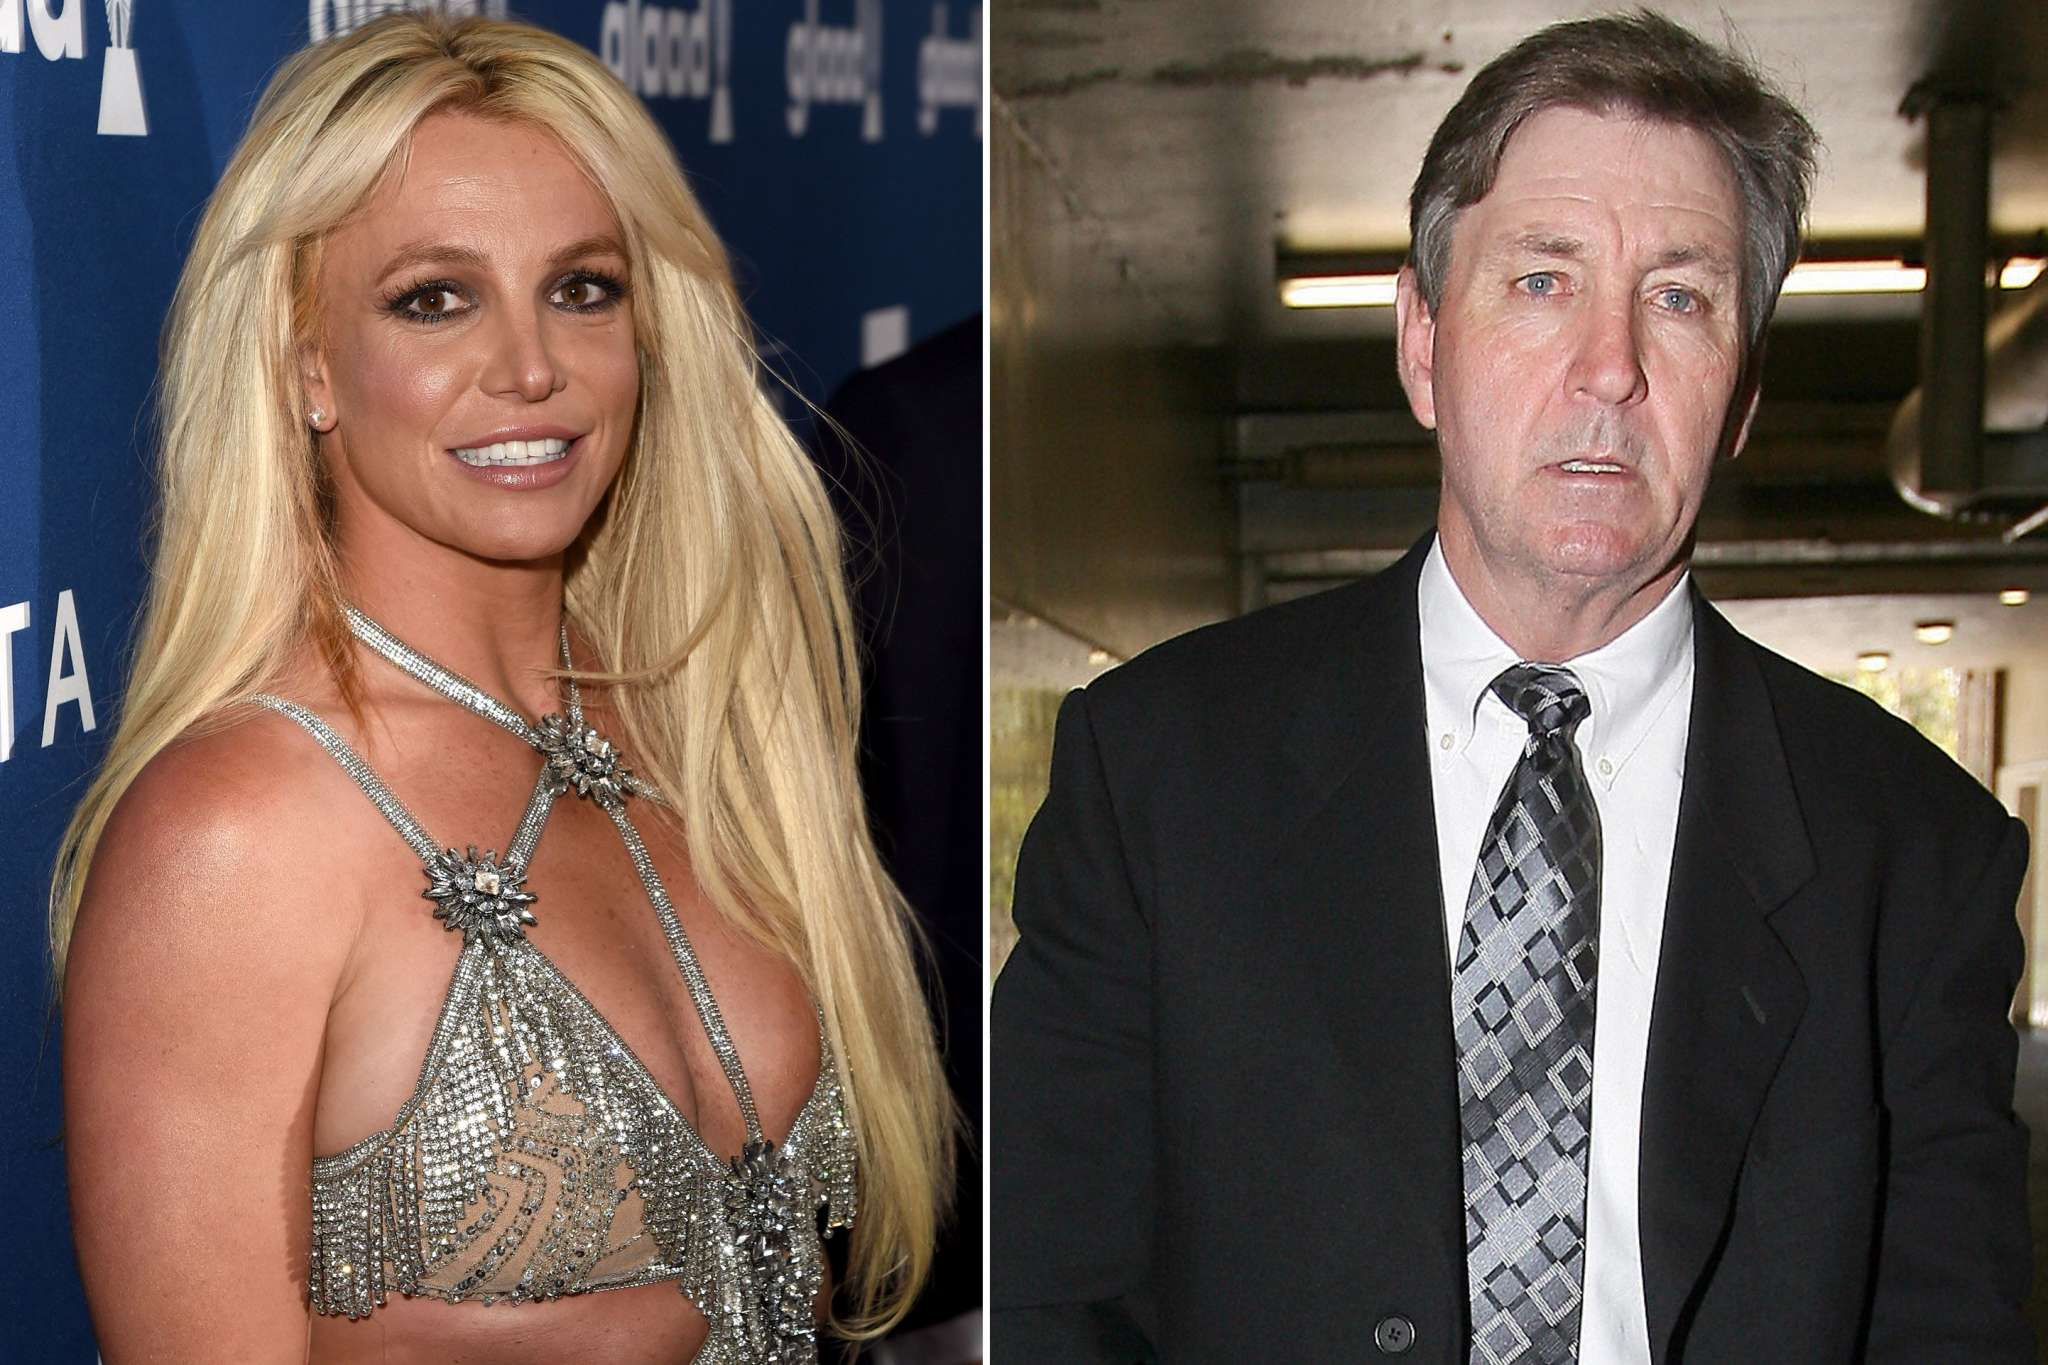 """""""britney-spears-accuses-dad-of-conservatorship-abuse-in-new-court-testimony-says-she-thought-her-whole-family-was-trying-to-kill-me"""""""